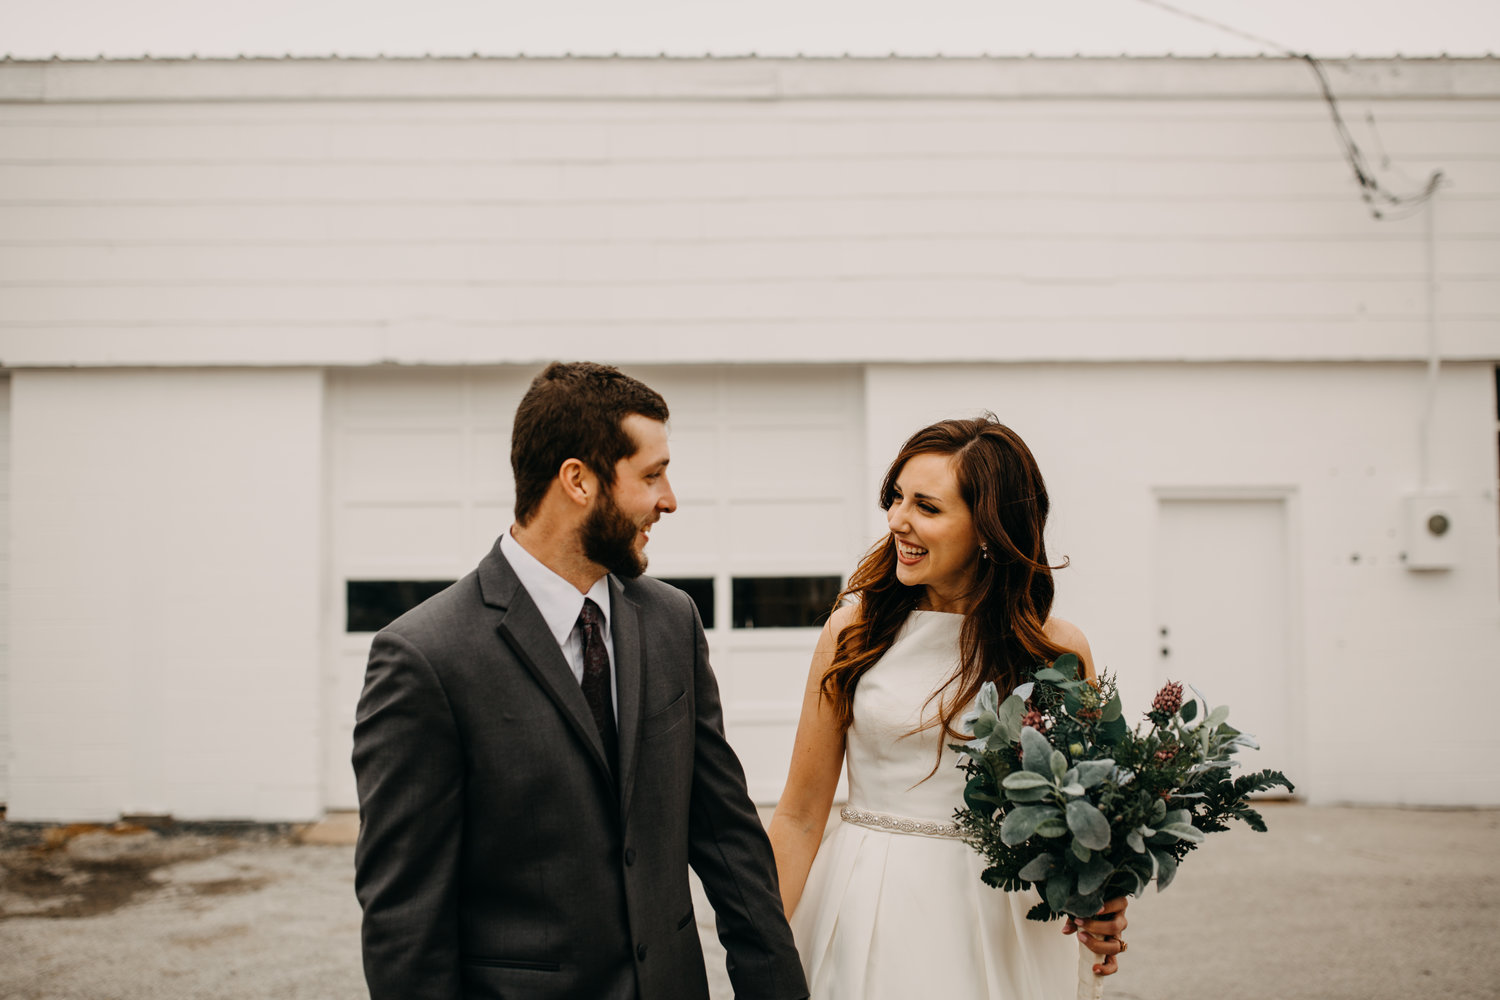 KENDACE + BRODIE   THE RAMSAY   JOPLIN, MO — Inner Images Photography